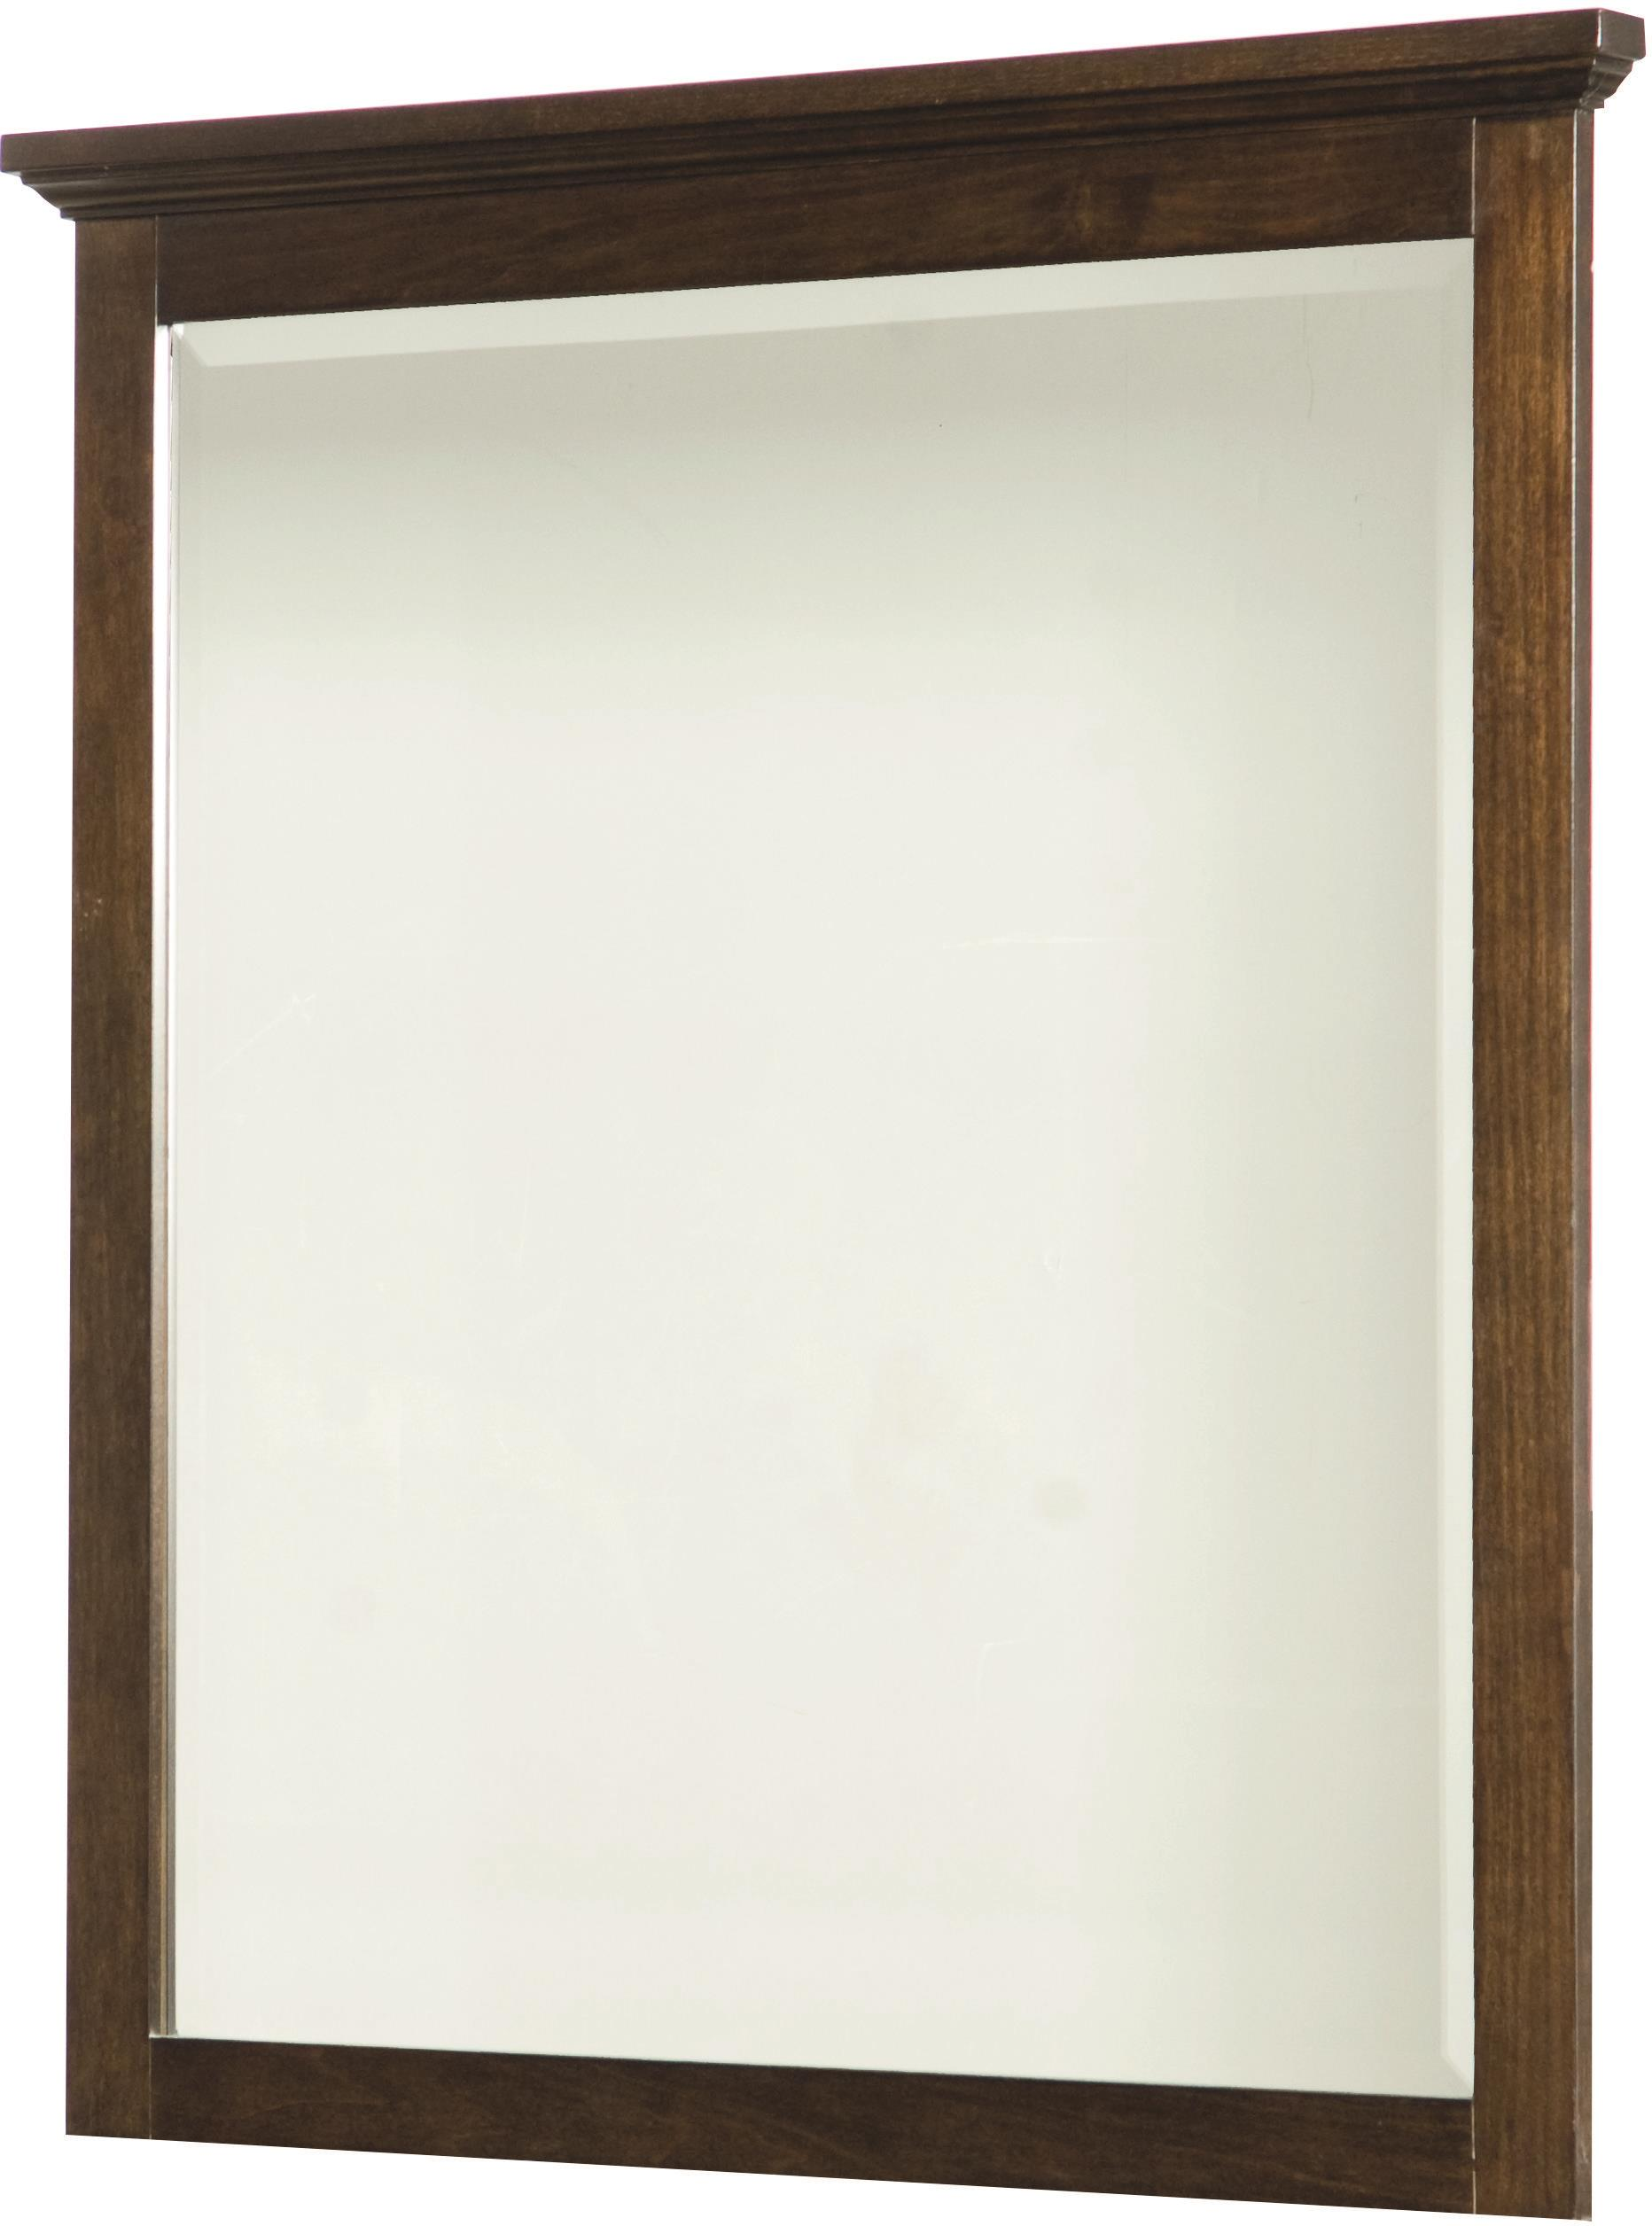 Academy Mirror by Legacy Classic Kids at Pilgrim Furniture City